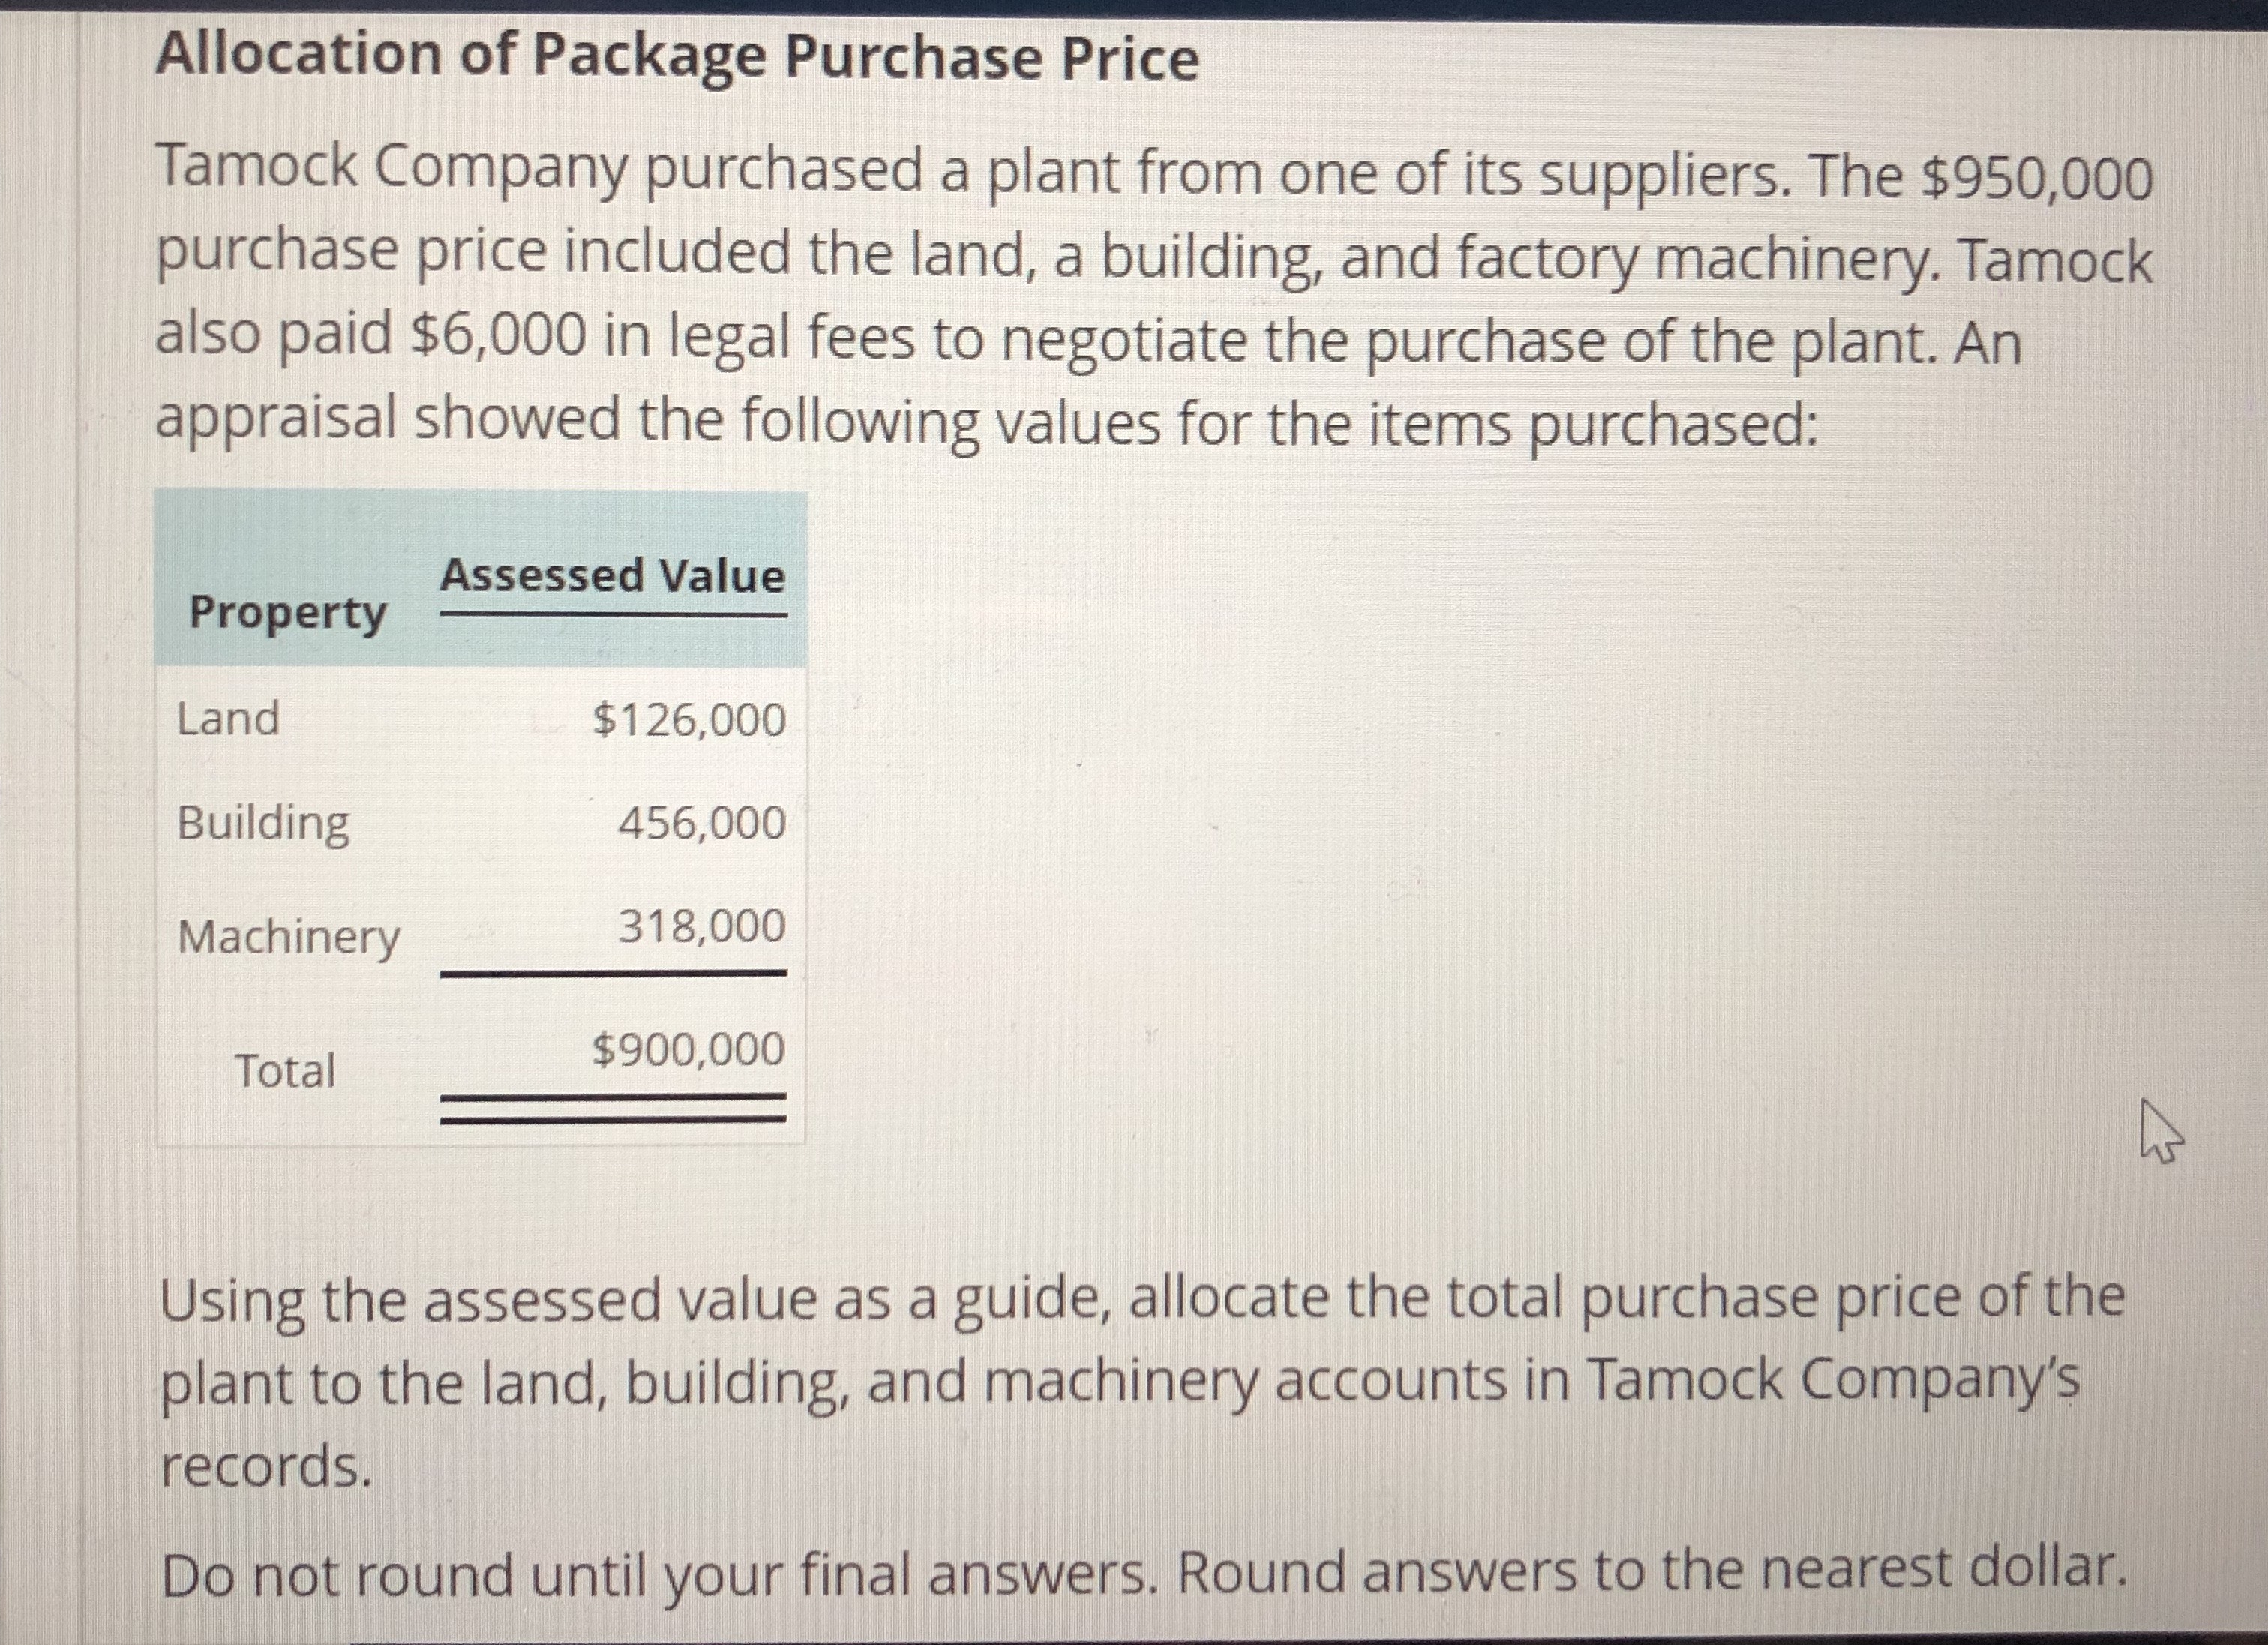 Allocation of Package Purchase Price Tamock Company purchased a plant from one of its suppliers. The $950,000 purchase price included the land, a building, and factory machinery. Tamock also paid $6,000 in legal fees to negotiate the purchase of the plant. Arn appraisal showed the following values for the items purchased: Assessed Value Property Land Building Machinery318,000 $126,000 456,000 TotalF $900,000 Using the assessed value as a guide, allocate the total purchase price of the plant to the land, building, and machinery accounts in Tamock Company's records. Do not round until your final answers. Round answers to the nearest dollar.